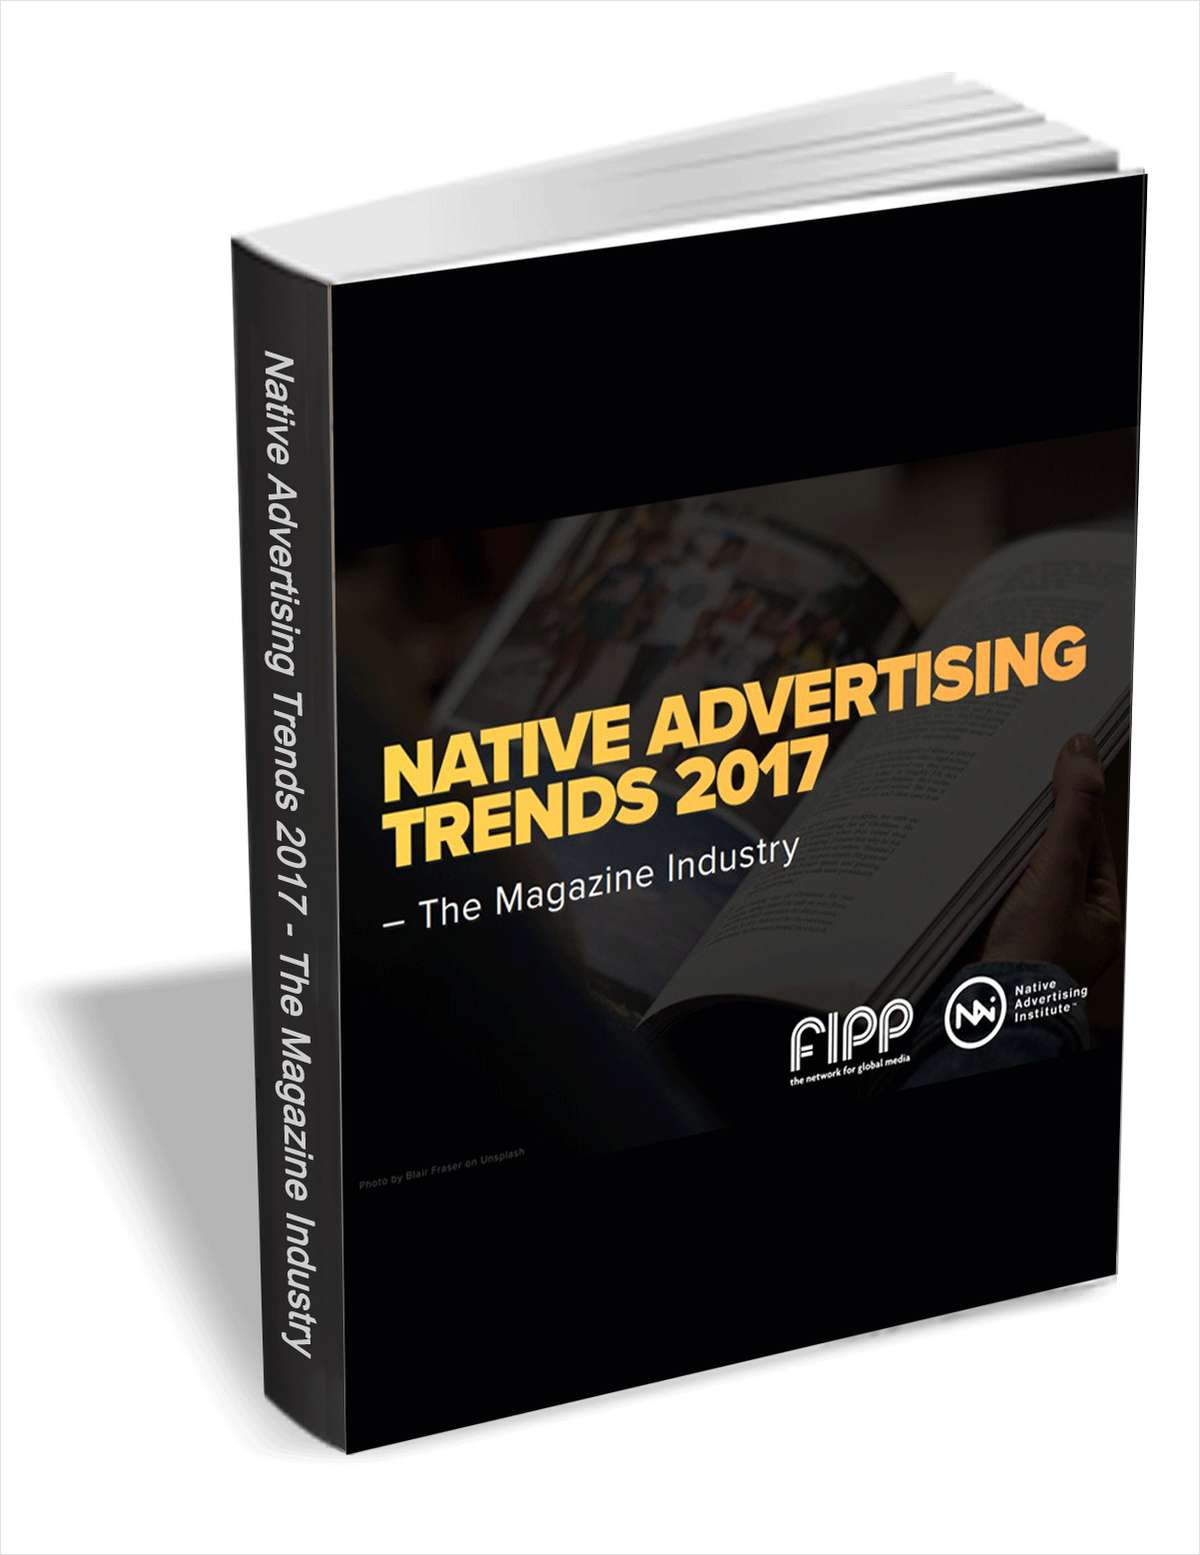 Native Advertising Trends 2017 - The Magazine Industry